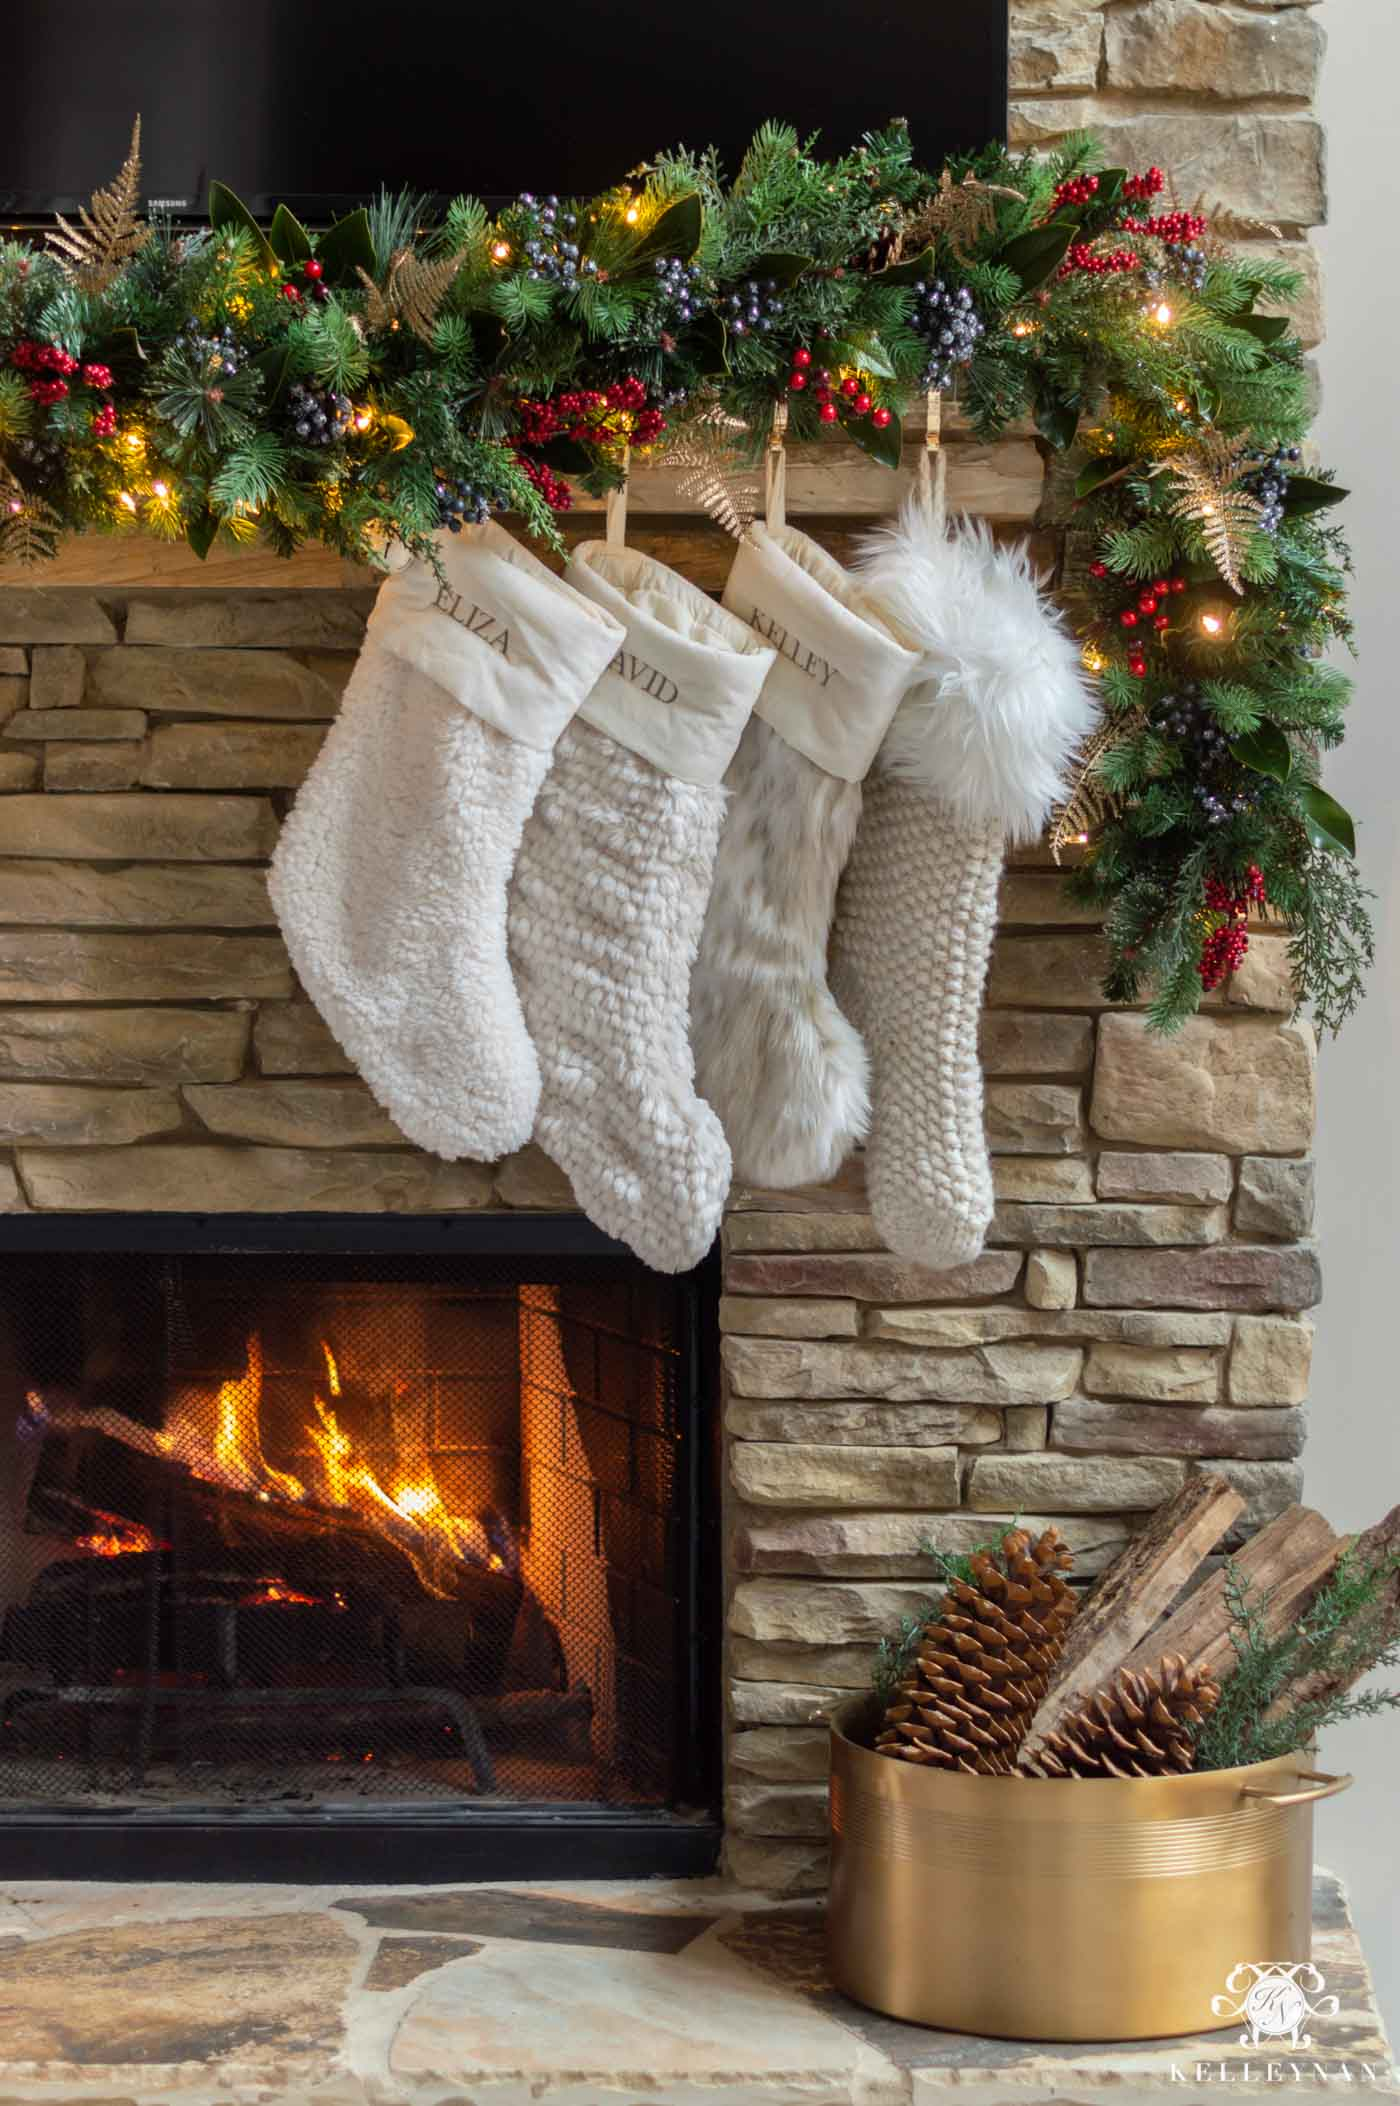 Christmas Fireplace Decor with Greenery and Fur Stockings